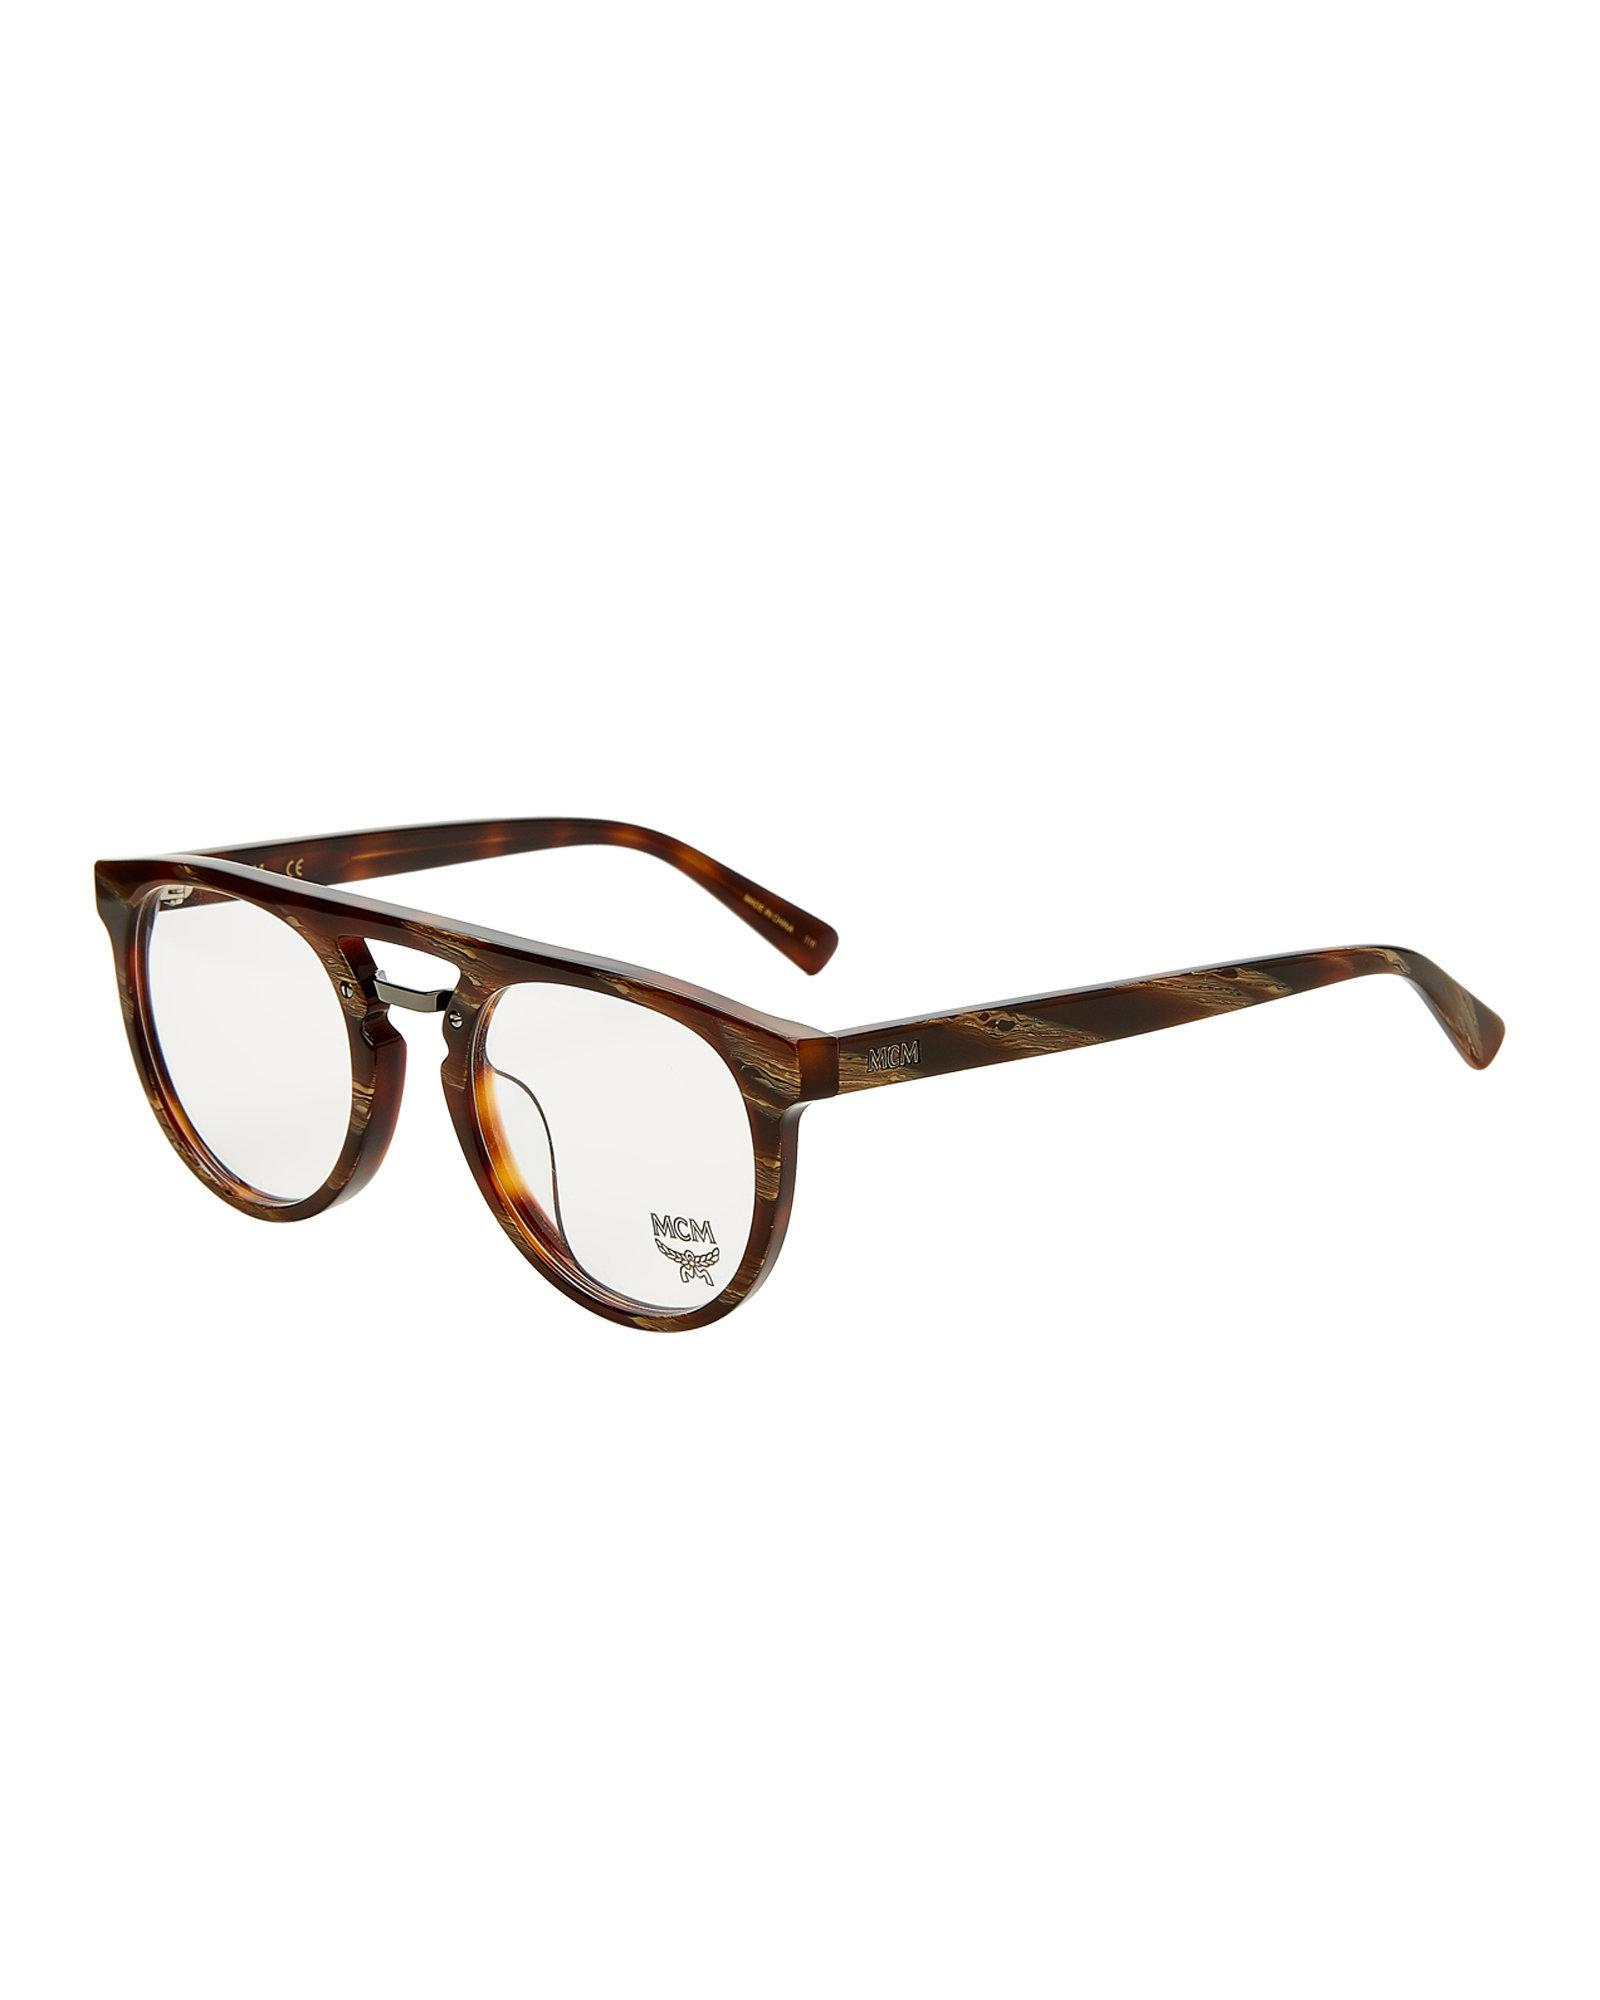 Lyst - Mcm 2626a Retro Round Optical Frames in Brown